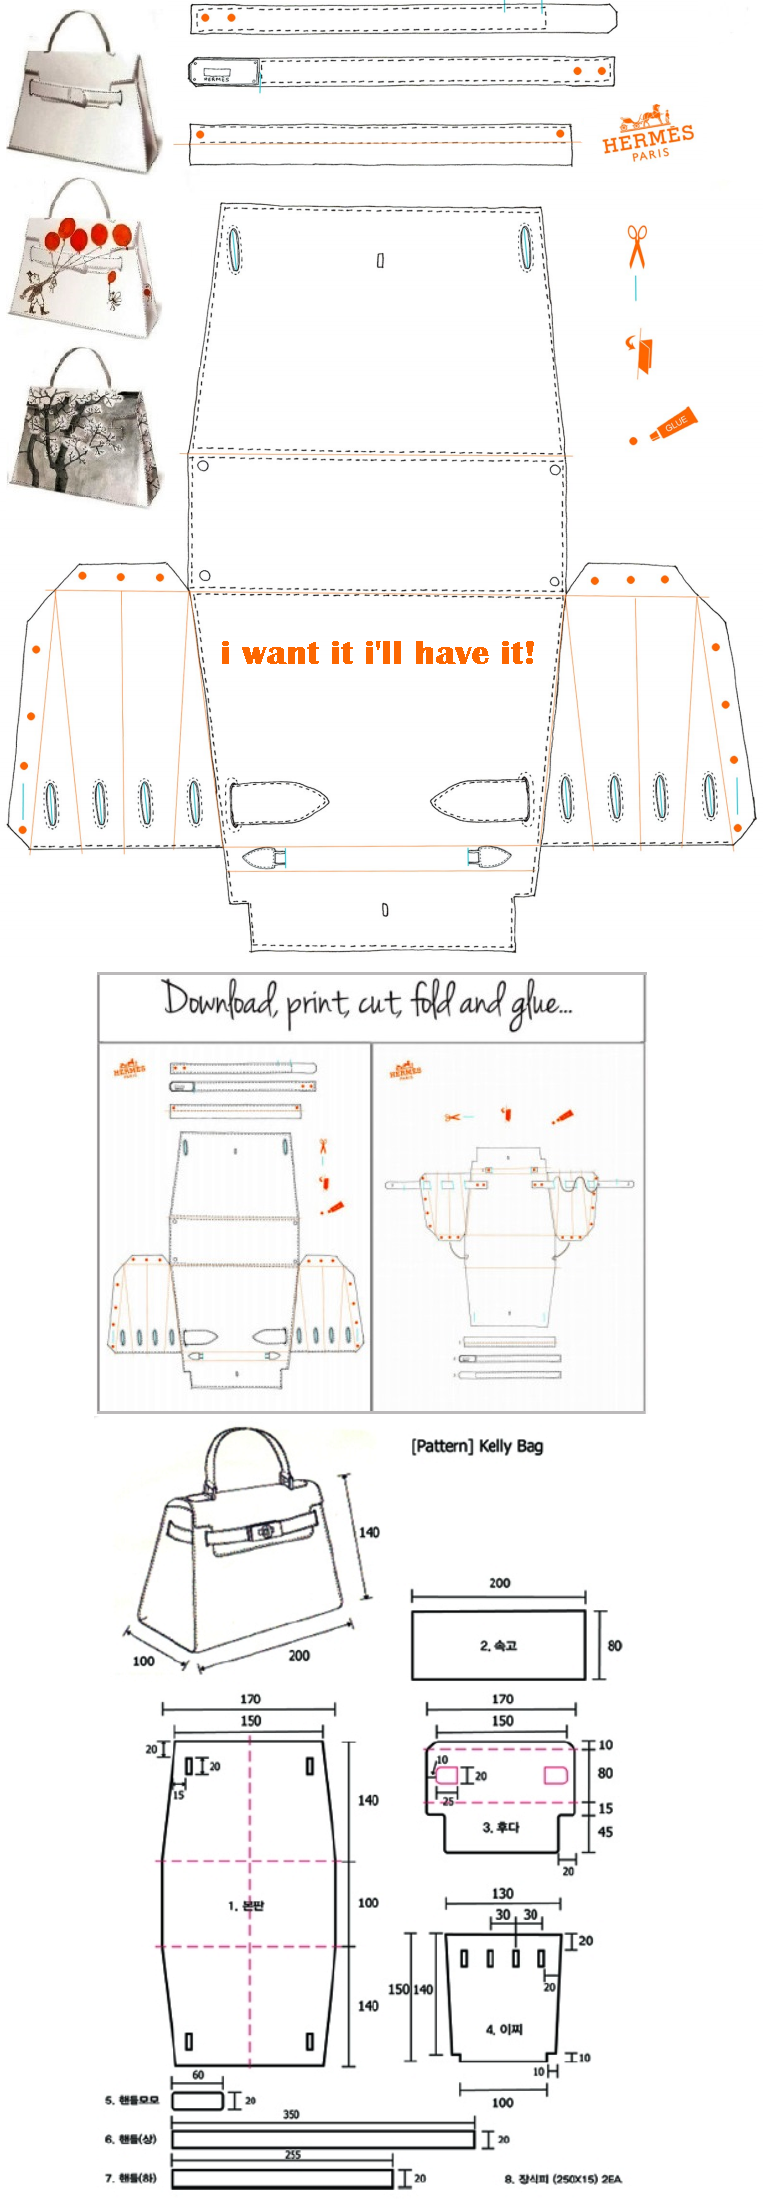 Hermes Kelly Bag Origami Paper Craft I Want It I Ll Have It Http Yesmissy Files Wordpress Com 2013 01 Ke Hermes Kelly Bag Leather Bag Pattern Kelly Bag